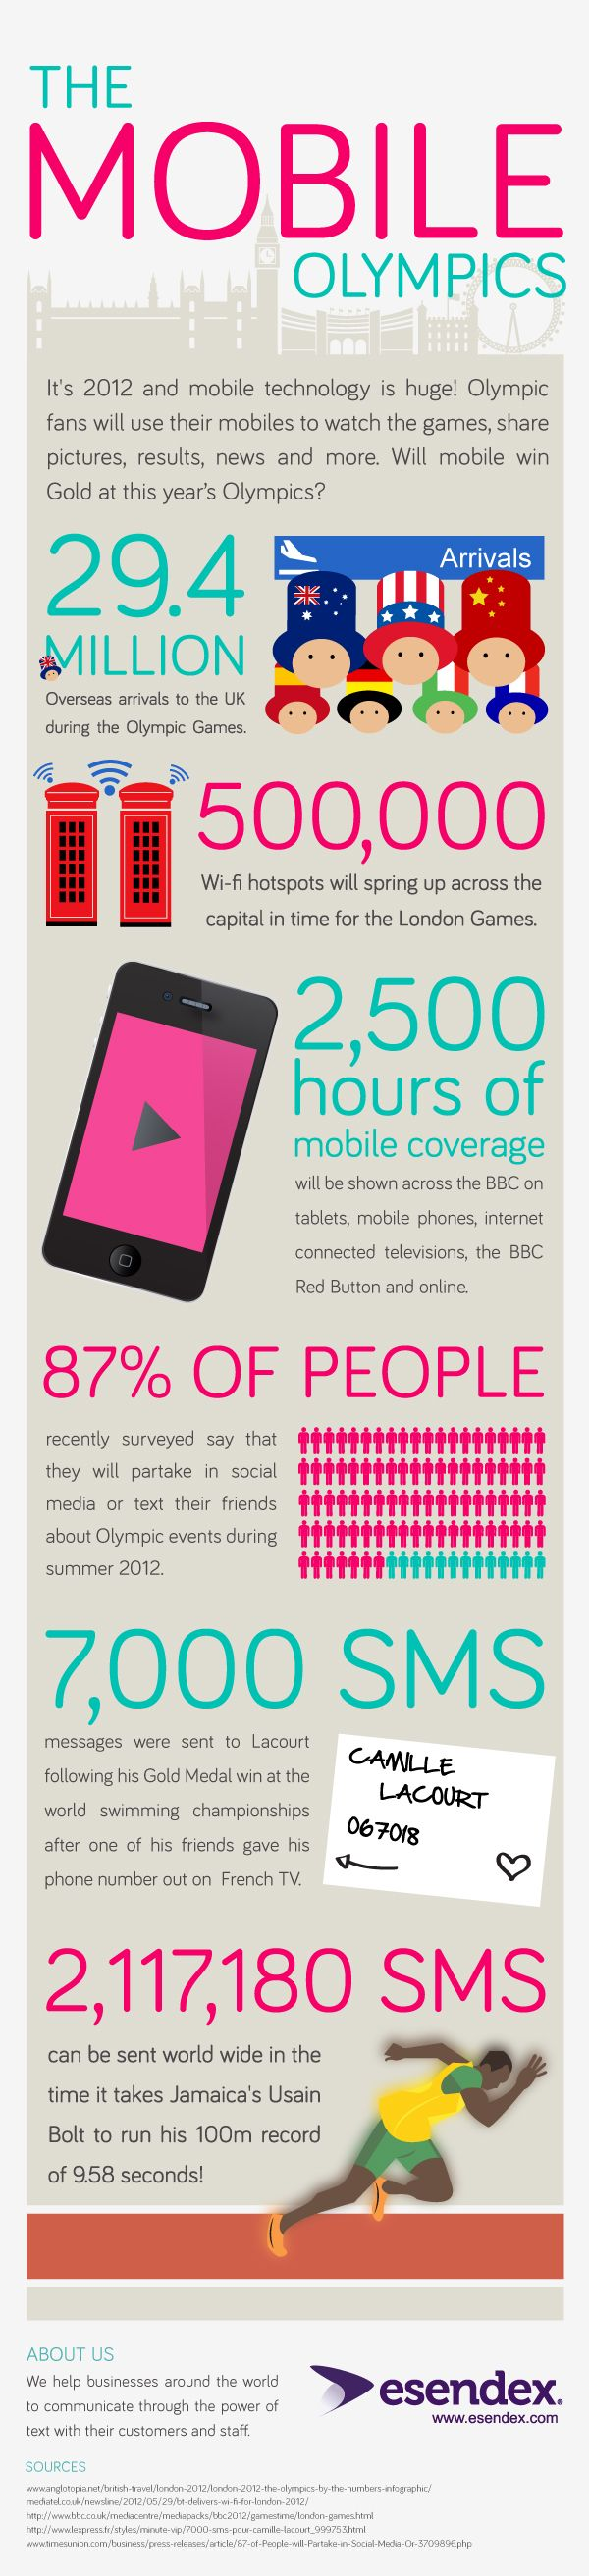 The Mobile Olympics Infographic